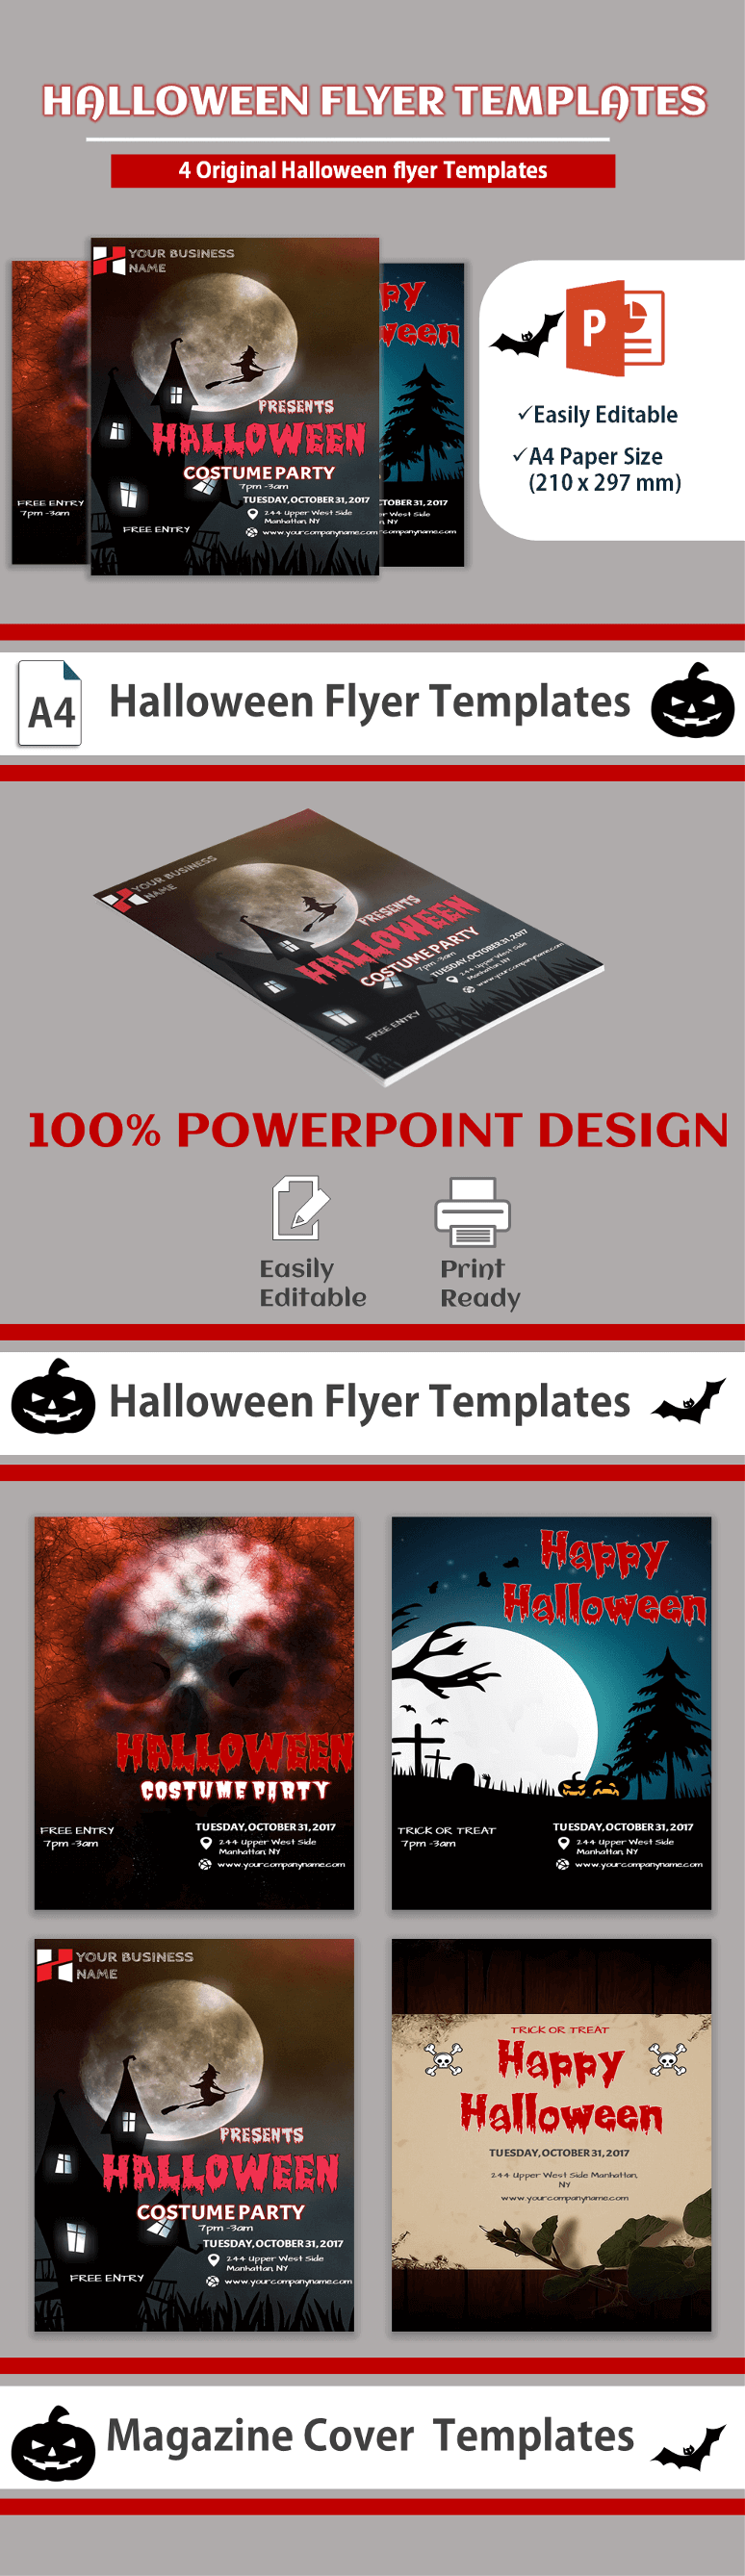 Hallows Eve Graphics Pack